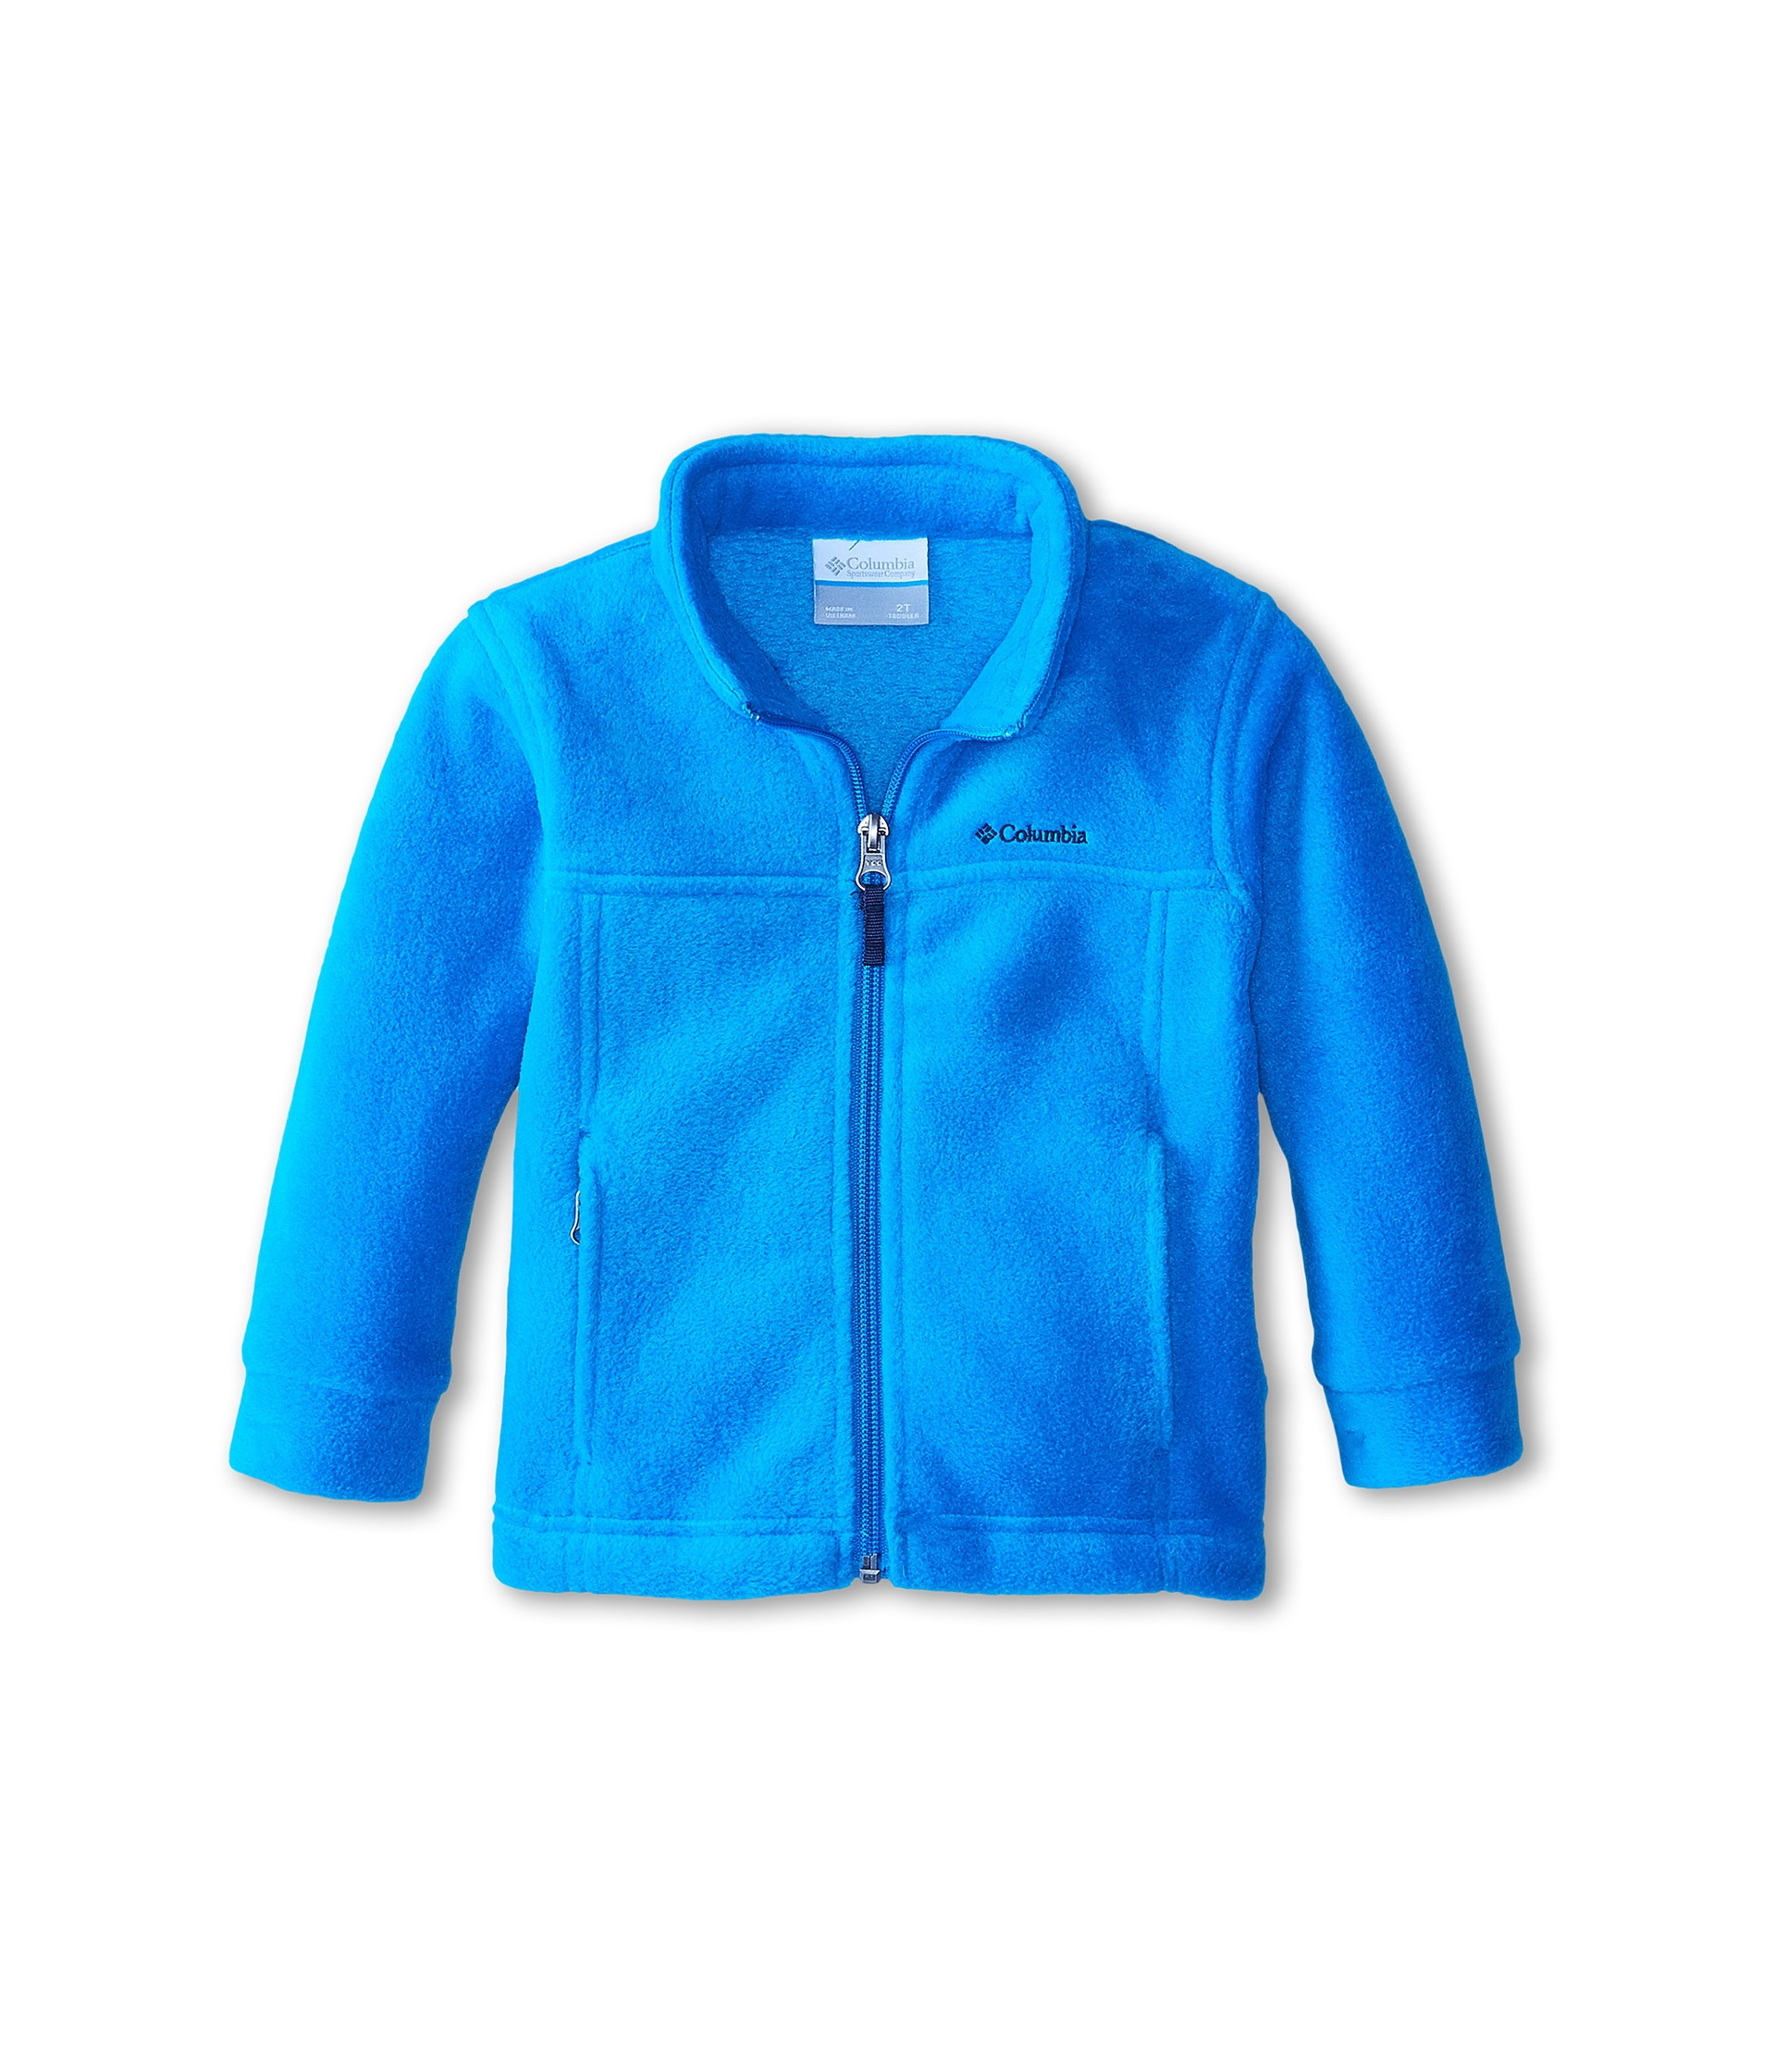 Shop for Kids' Fleece Jackets at REI - FREE SHIPPING With $50 minimum purchase. Top quality, great selection and expert advice you can trust. % Satisfaction Guarantee.